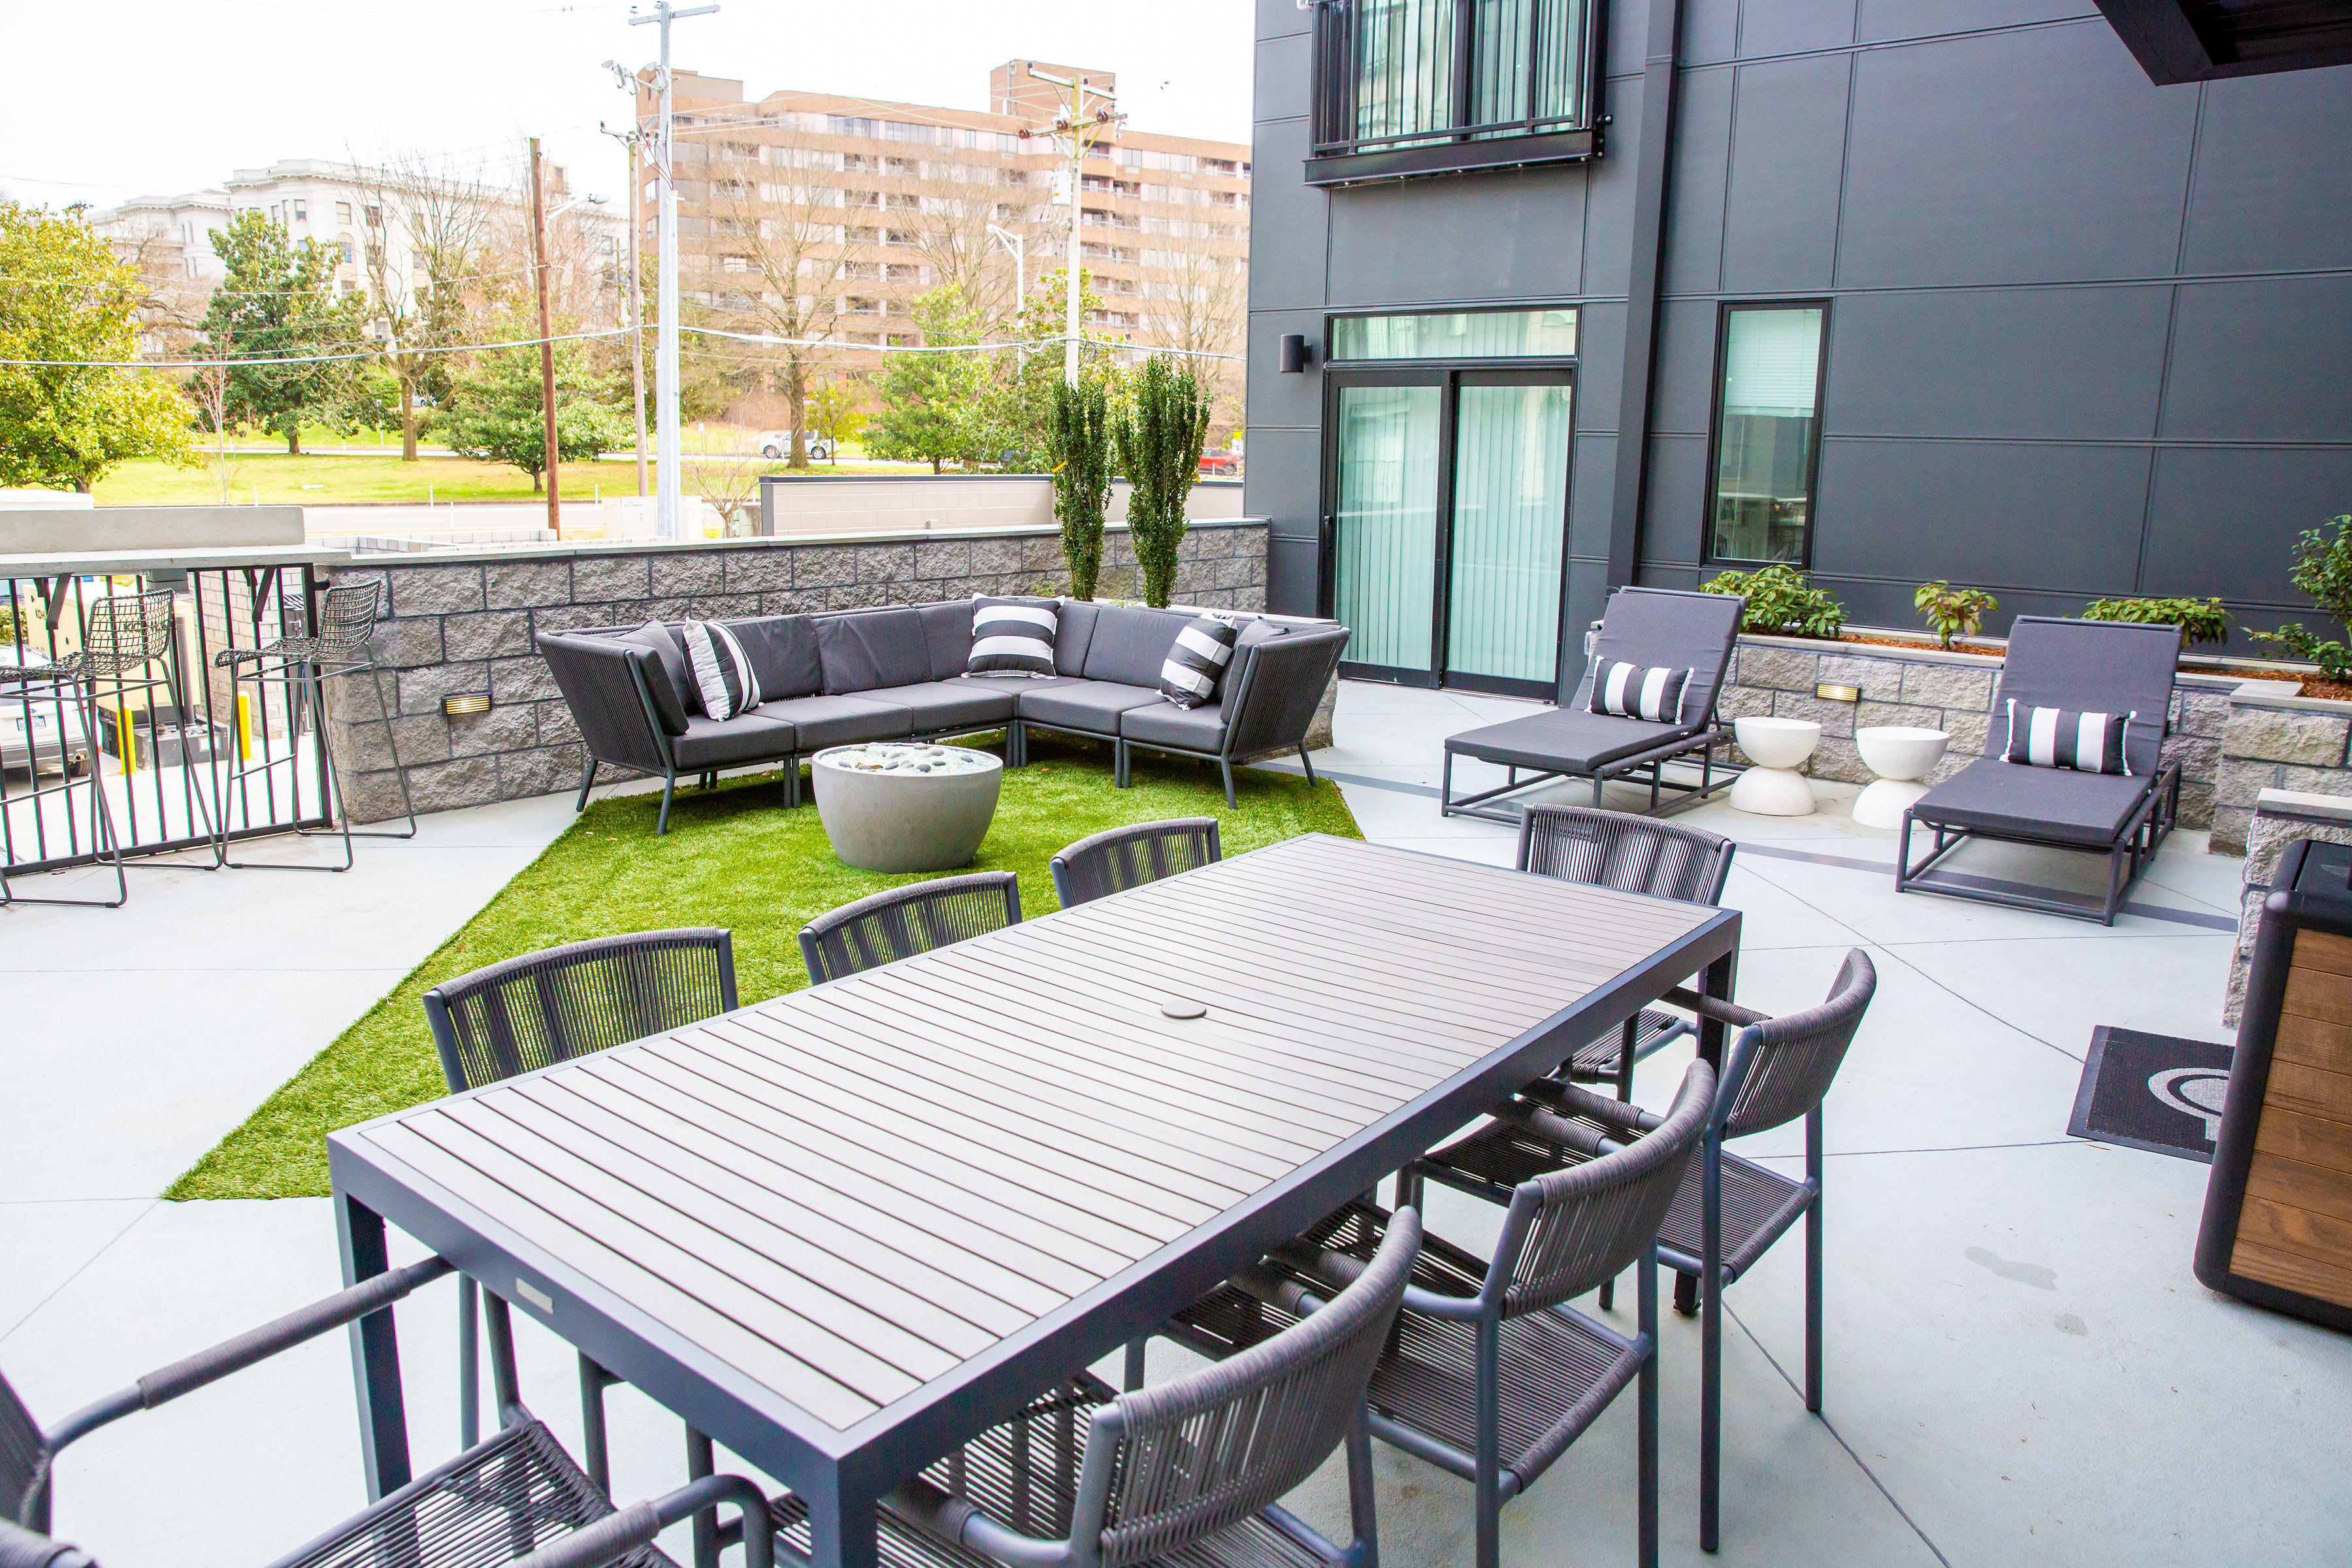 Patio and community fire pit at Belcourt Park in Nashville, Tennessee